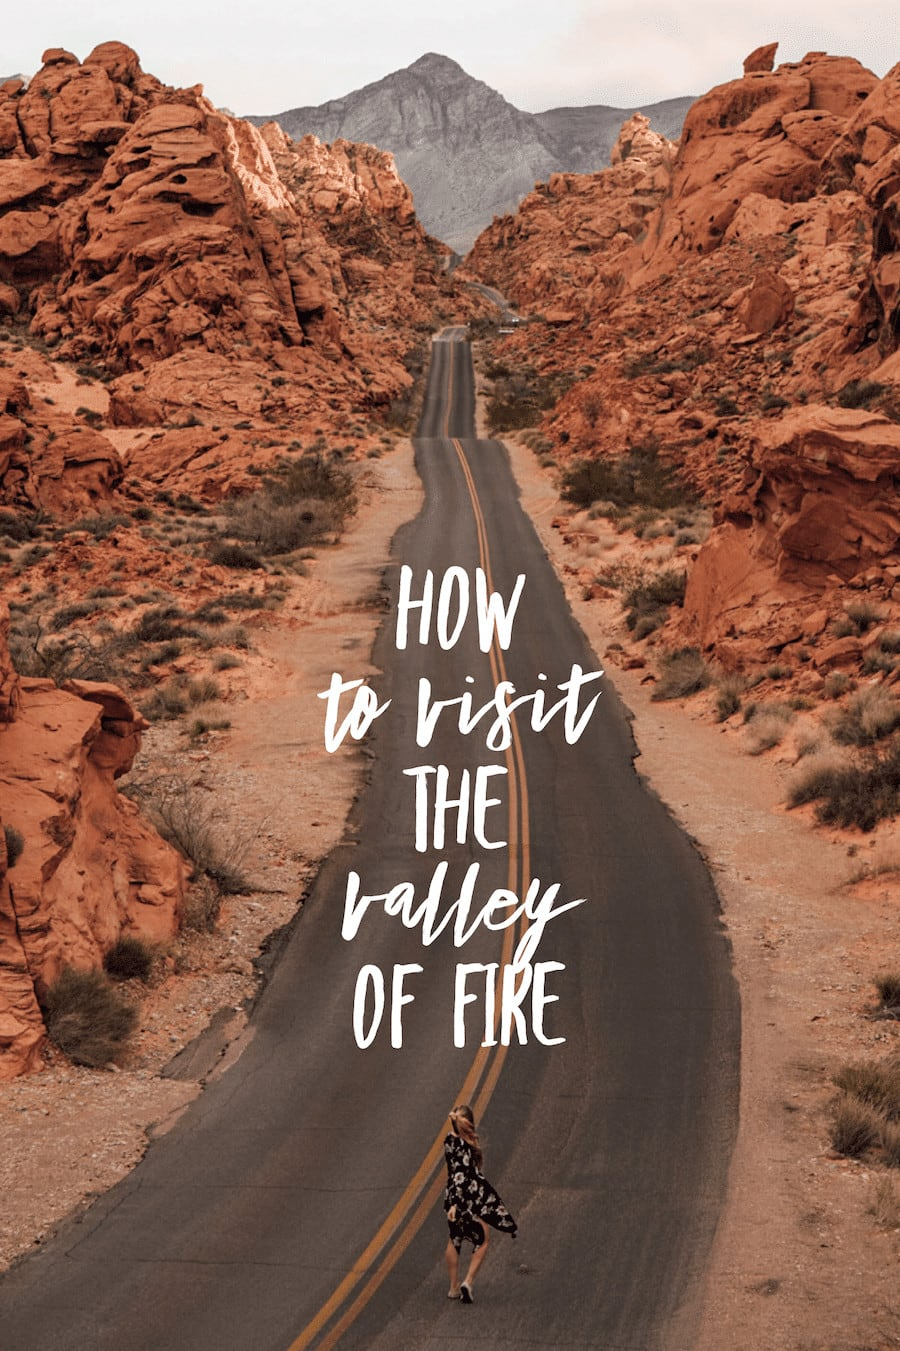 Valley of Fire, Nevada   Travel inspiration Nevada   What to do in Nevada   How to visit Valley of Fire   Valley of Fire USA   Valley of Fire state park   Valley of Fire guide   Valley of Fire photos  